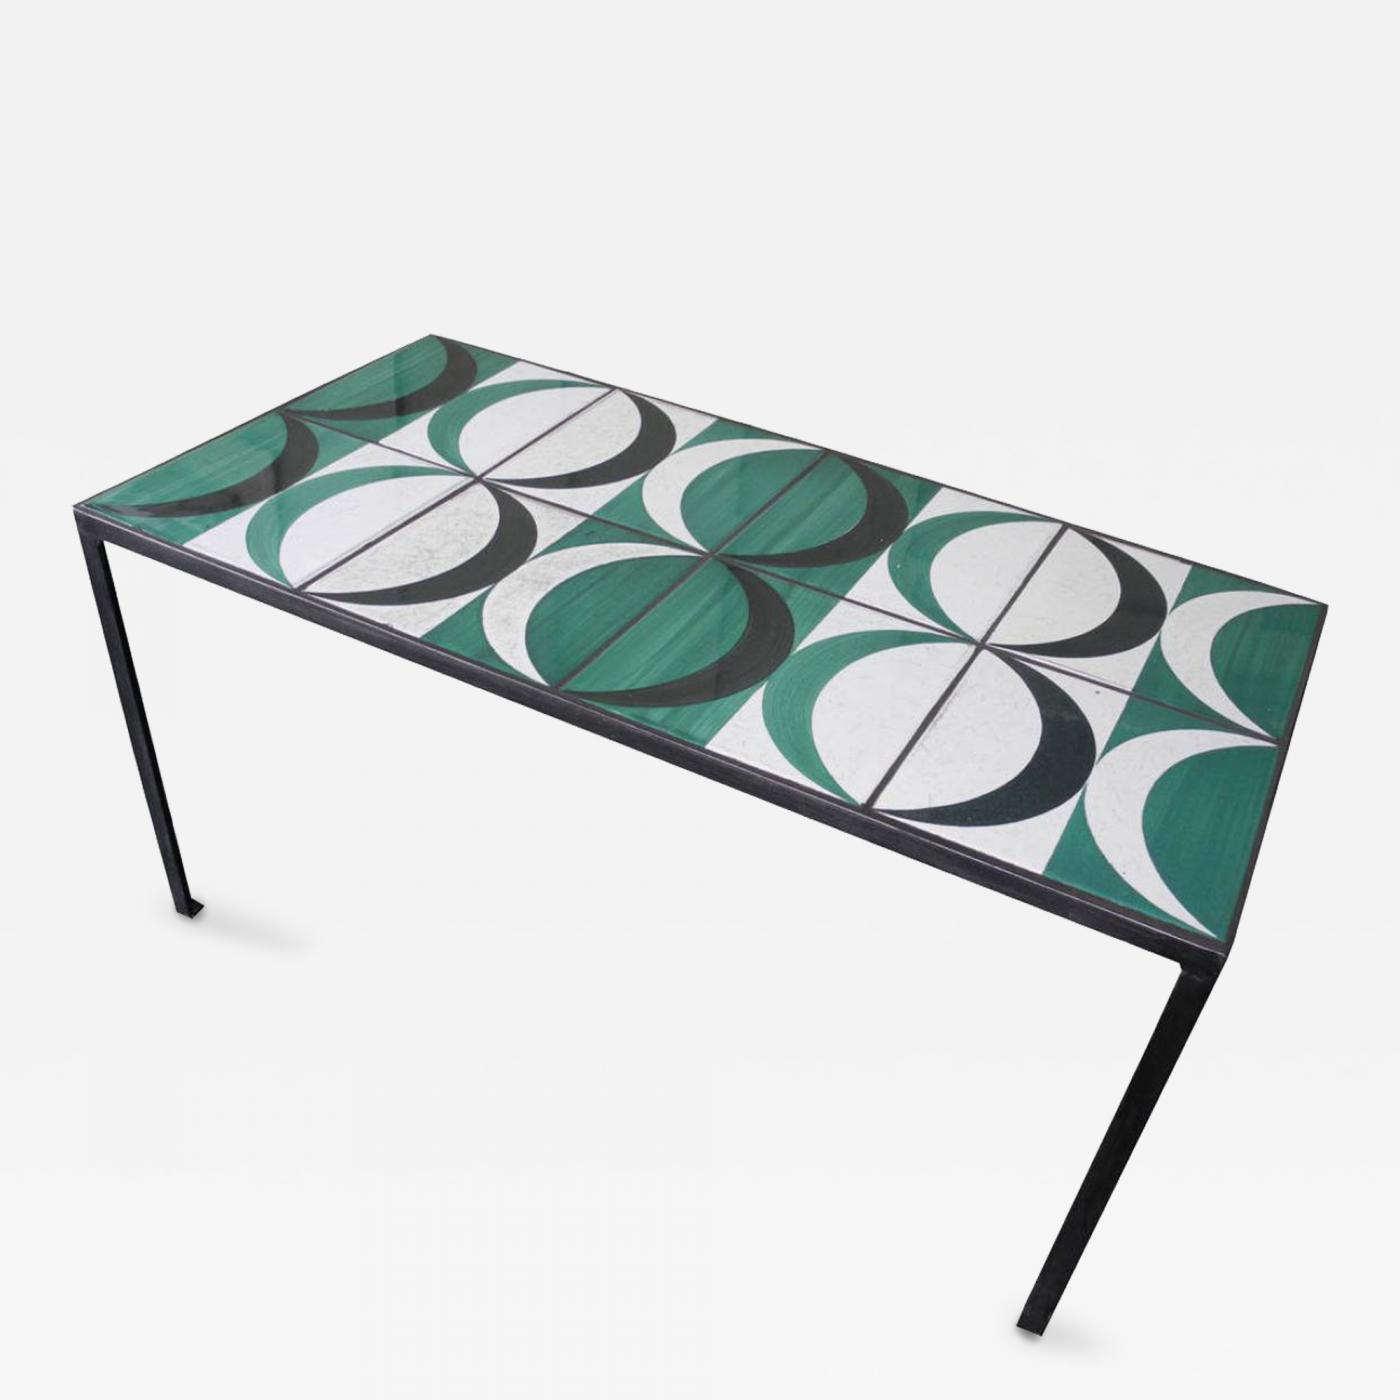 Gio Ponti Coffee Table with Original Gio Ponti Tiles